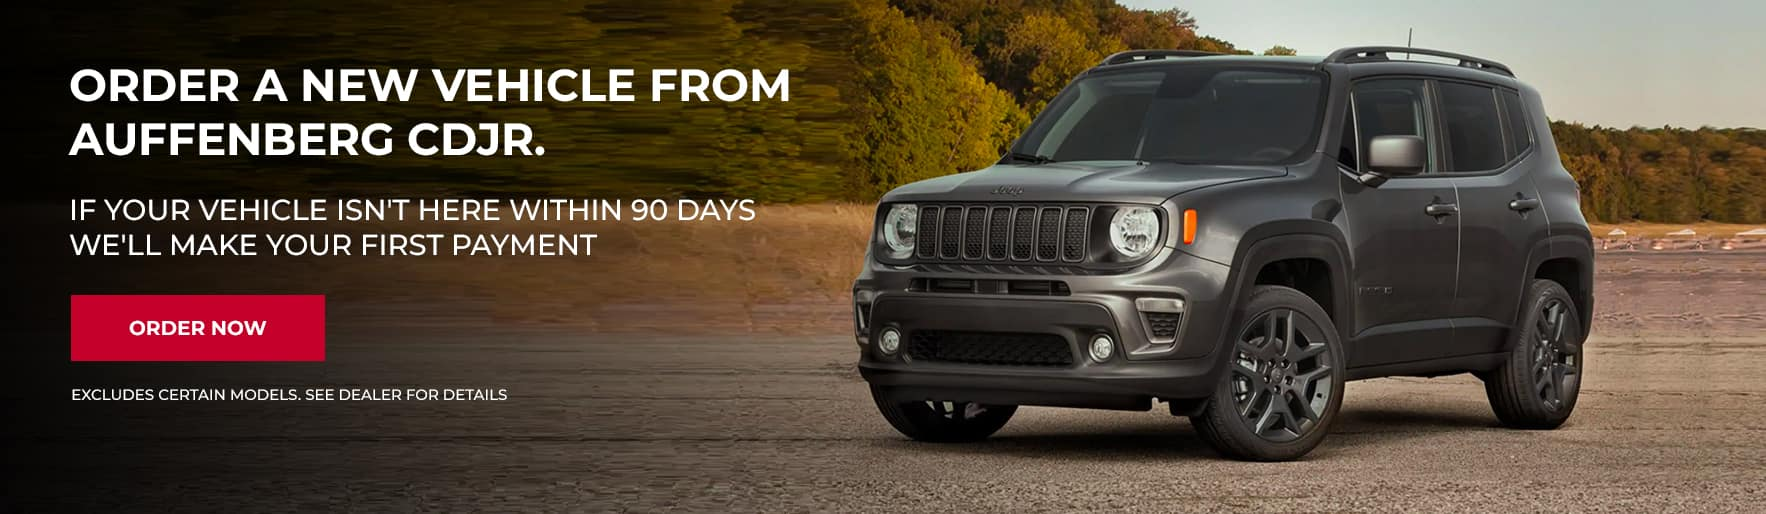 ORDER A NEW vehicle FROM AUFFENBERG CDJR . IF YOUR VEHICLE ISN'T HERE WITHIN 90 DAYS WE'LL MAKE YOUR FIRST PAYMENT Disclaimer:EXCLUDES certain models. See dealer for details